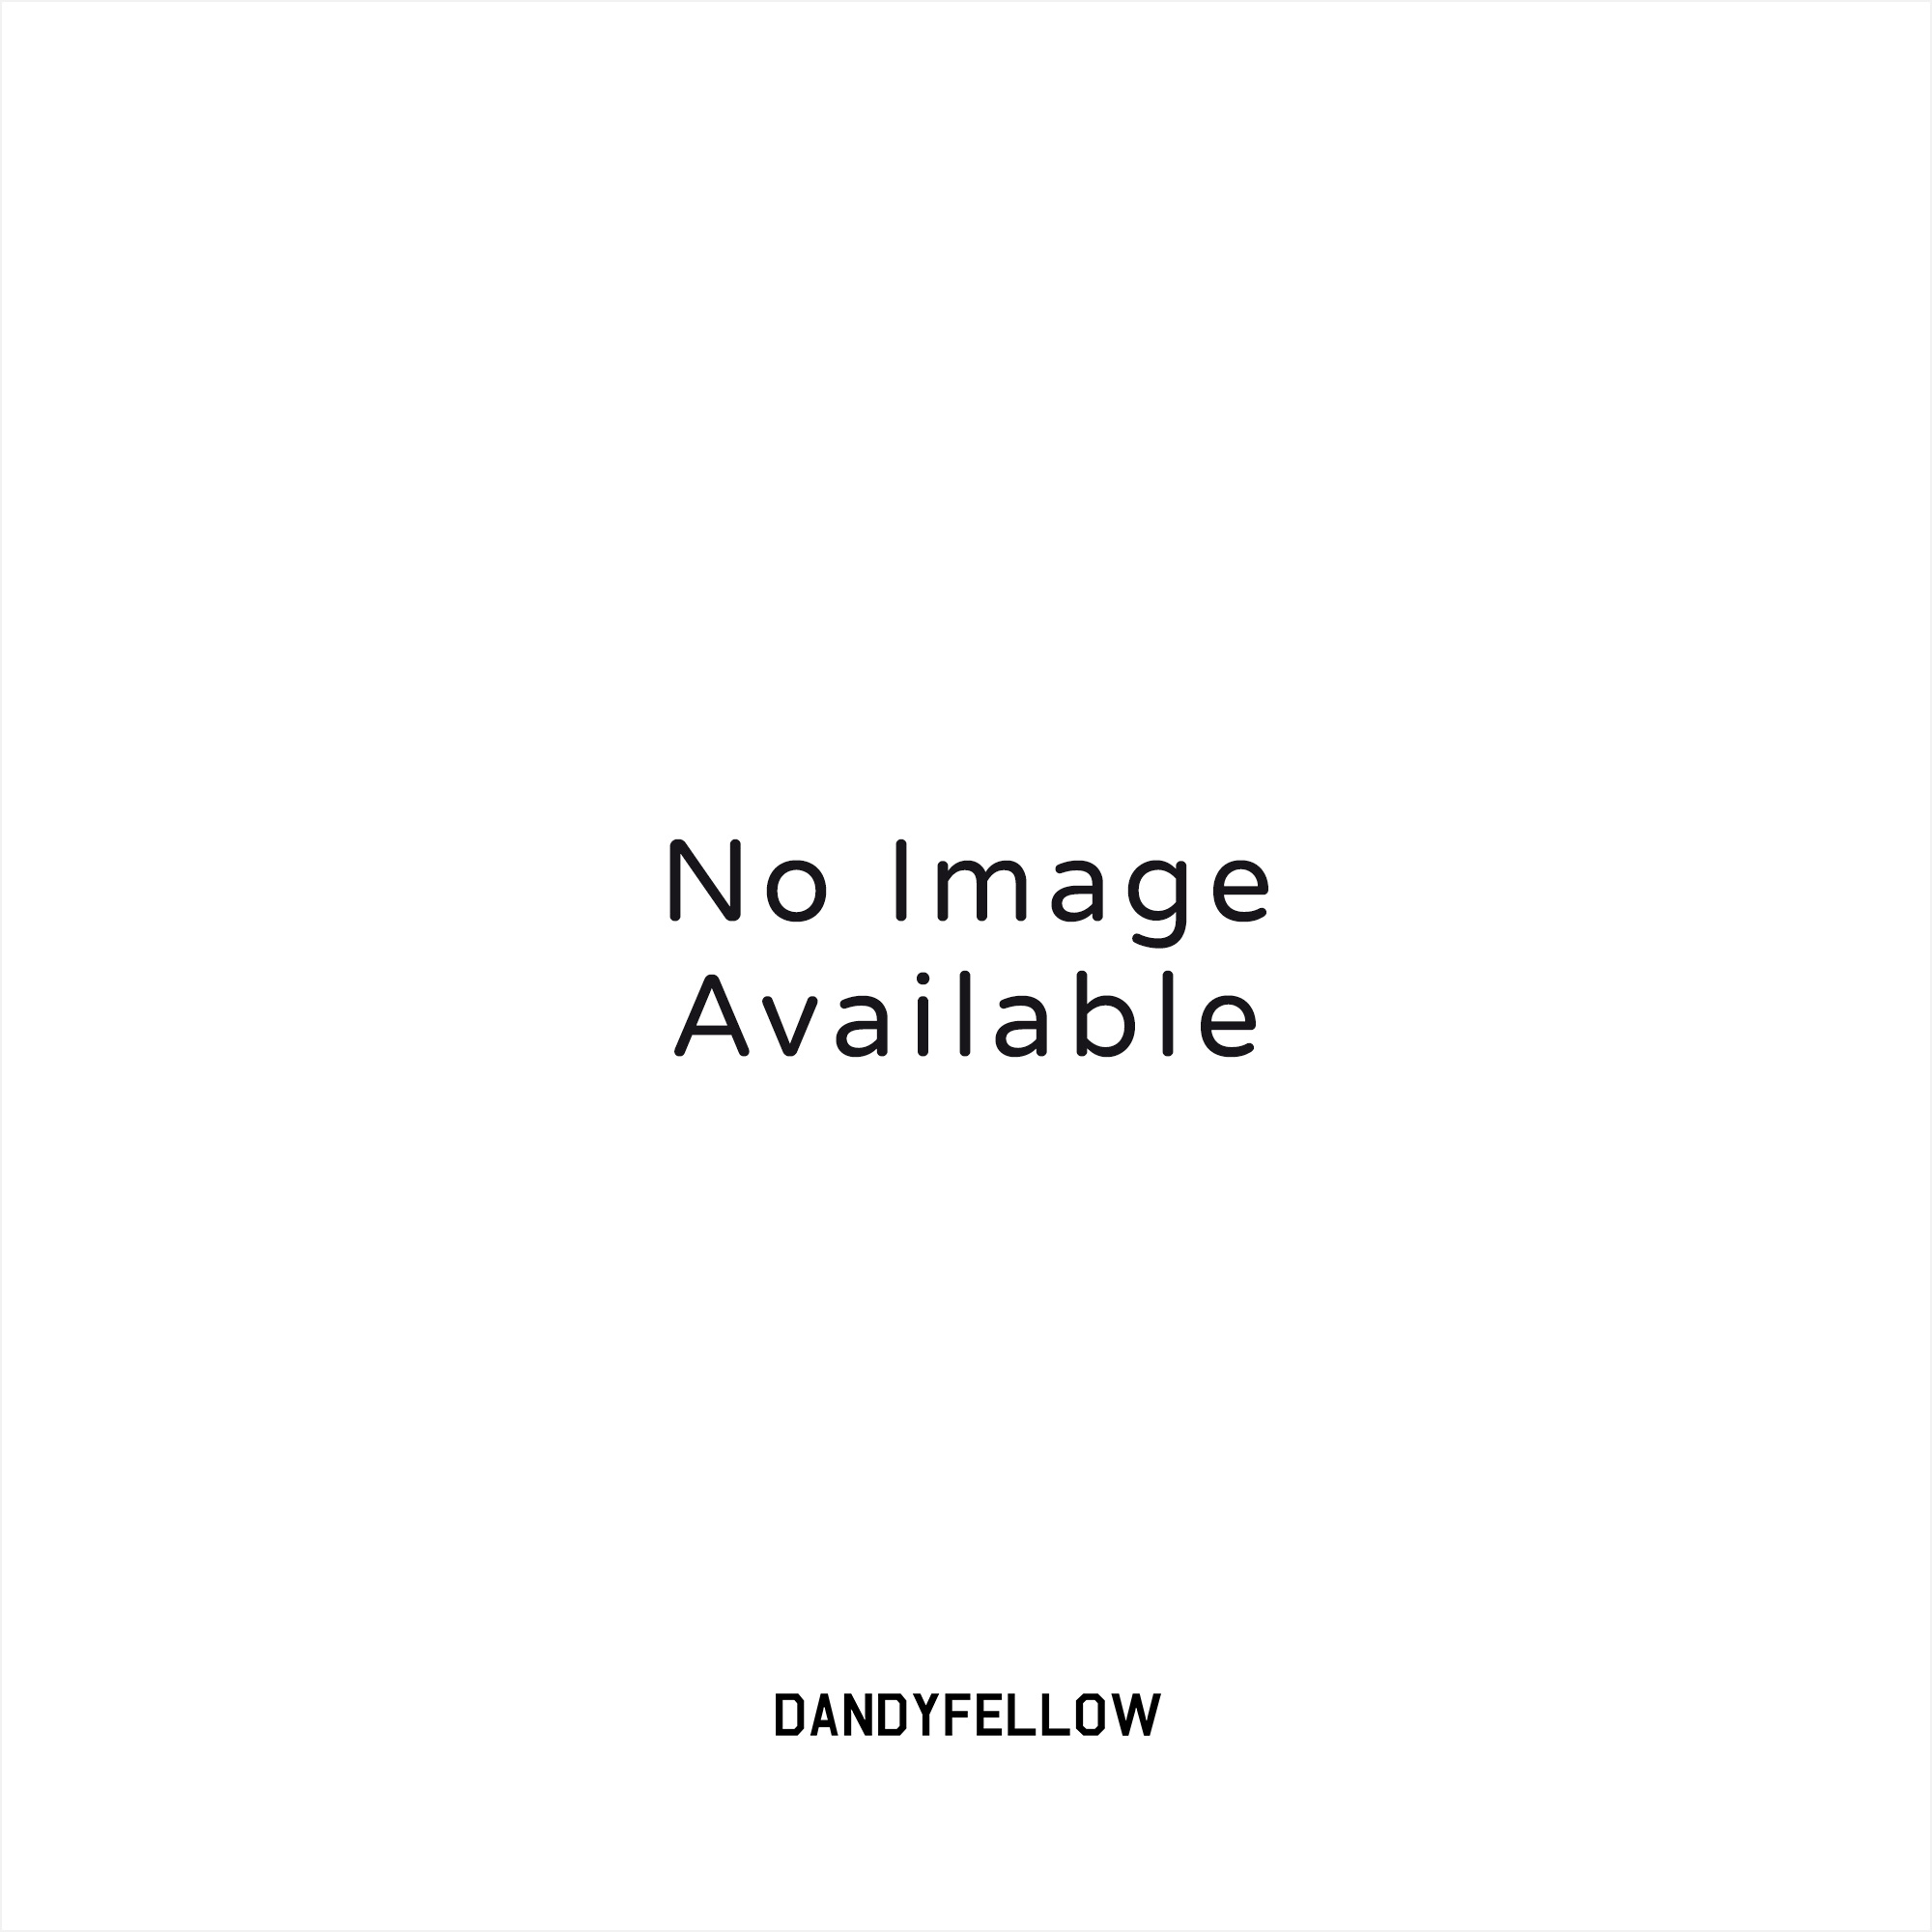 Paul Smith Classic Fit Blue Shirt JPFJ-632P-D290